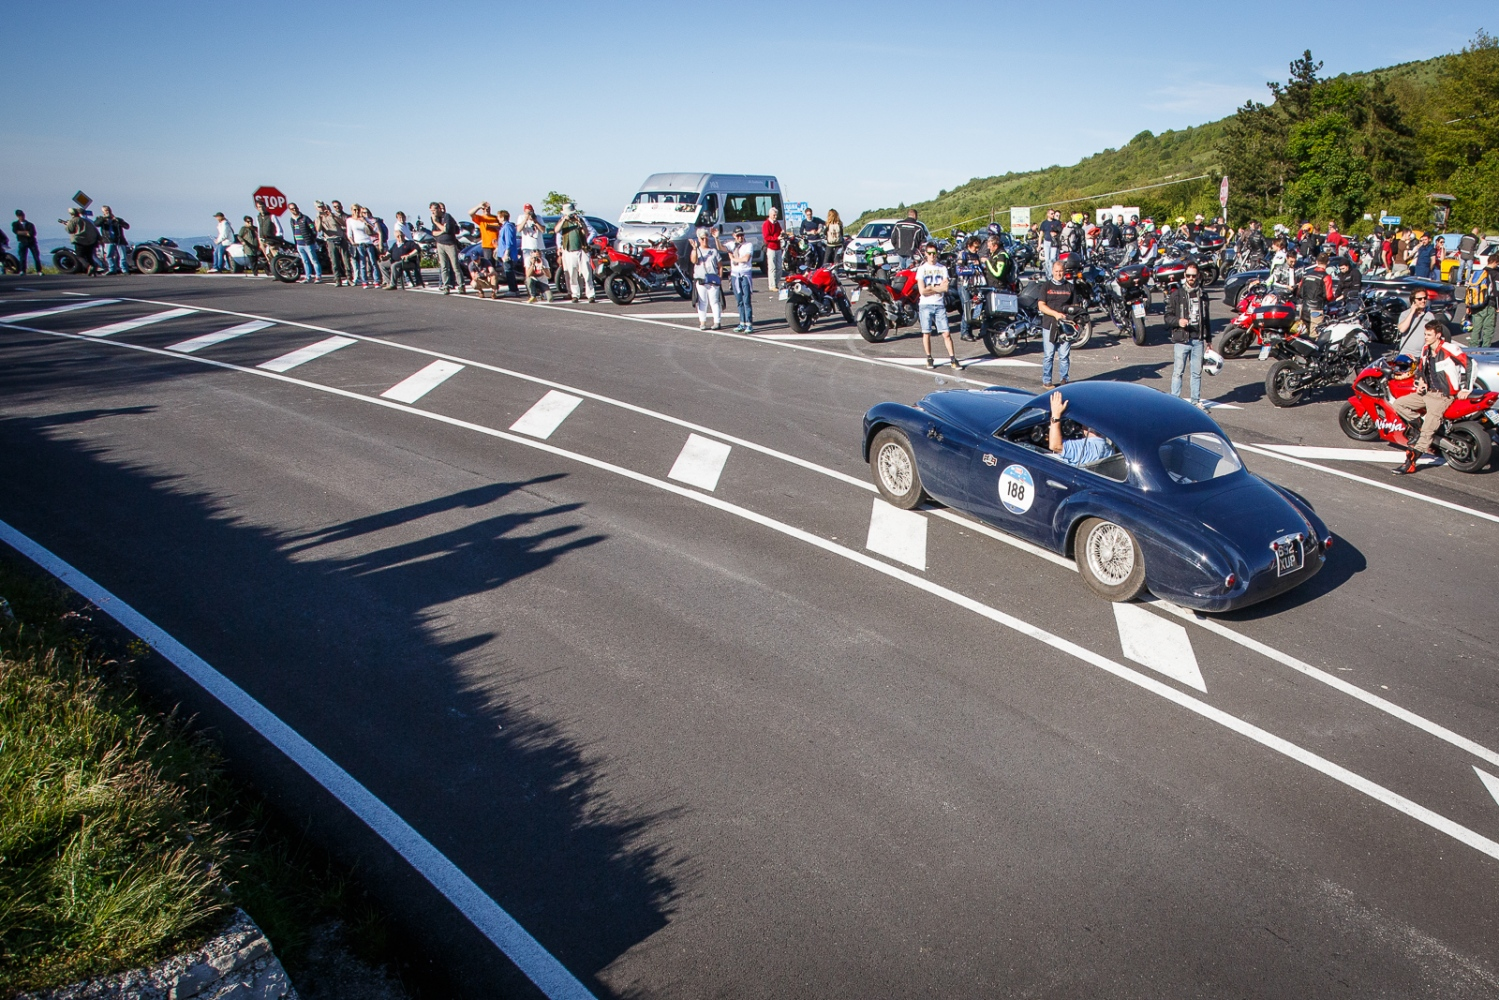 1000 Miglia historic road race Alfa Romeo 6C 2500 SS coup touring pass on the road of the Raticosa Pass towards Bologna